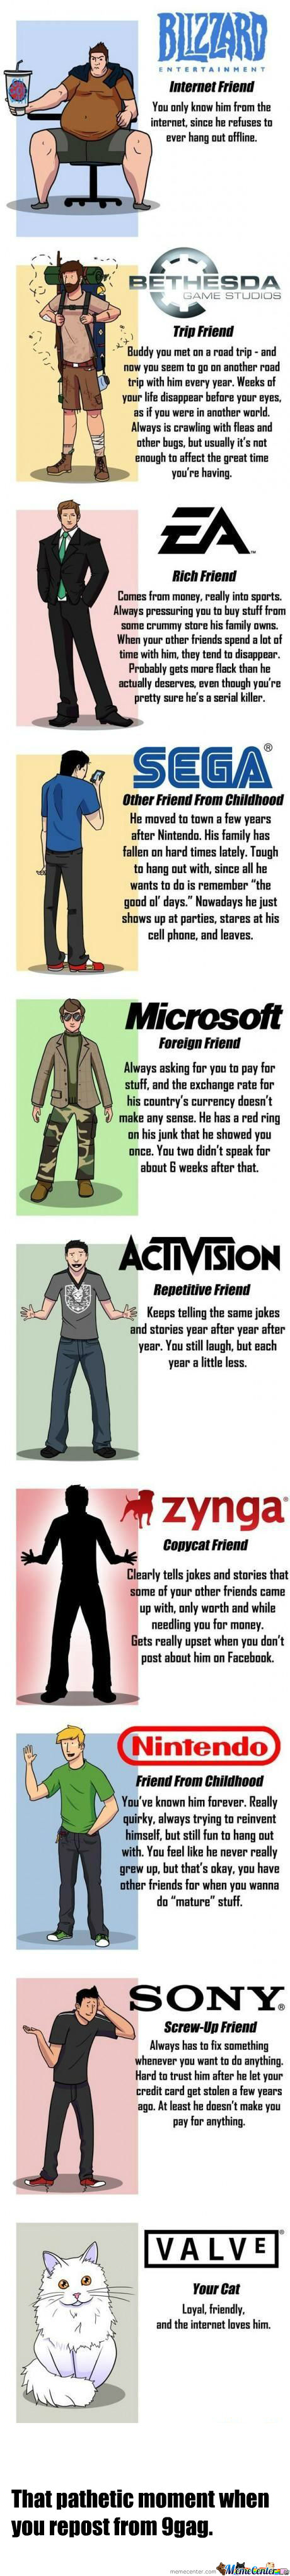 [RMX] If Game Companies Wore Your Friends